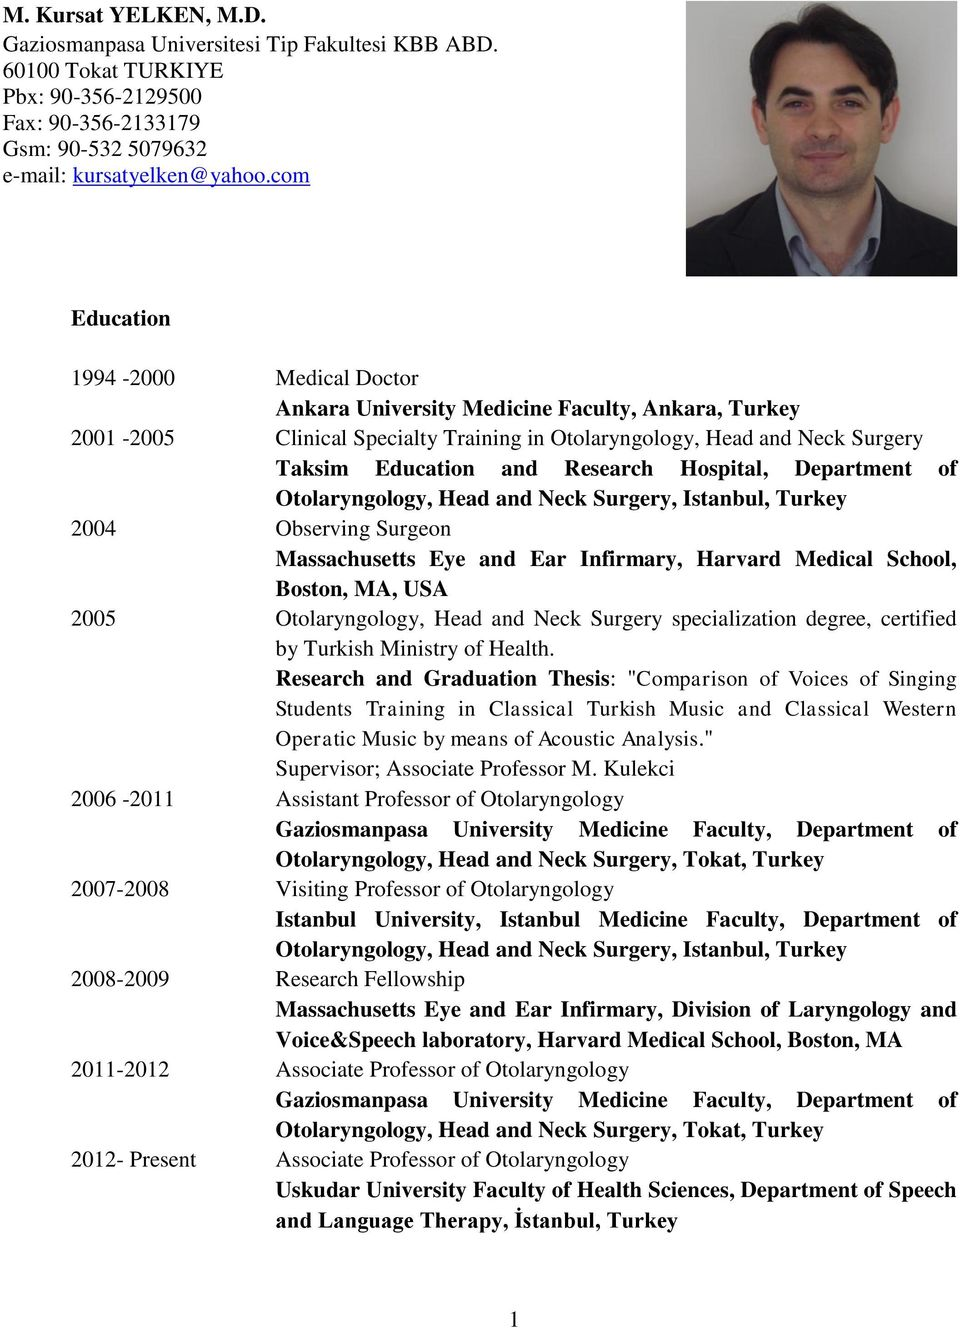 Hospital, Department of Otolaryngology, Head and Neck Surgery, Istanbul, Turkey 2004 Observing Surgeon Massachusetts Eye and Ear Infirmary, Harvard Medical School, Boston, MA, USA 2005